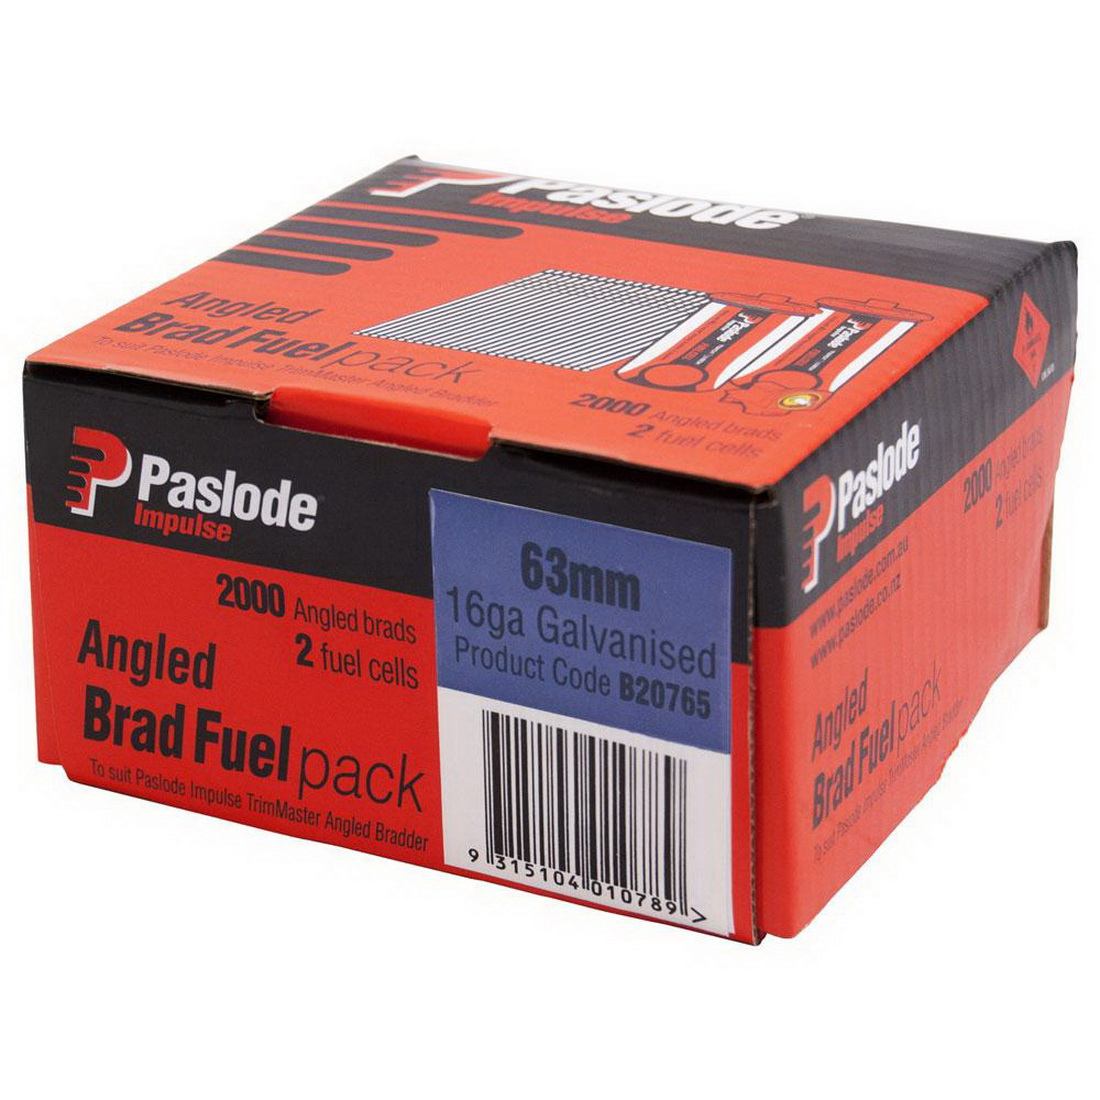 Impulse C Series Angled Brad with 2 Fuel Cell 16G 1.6 x 63mm Electro Galvanised 2000 pack